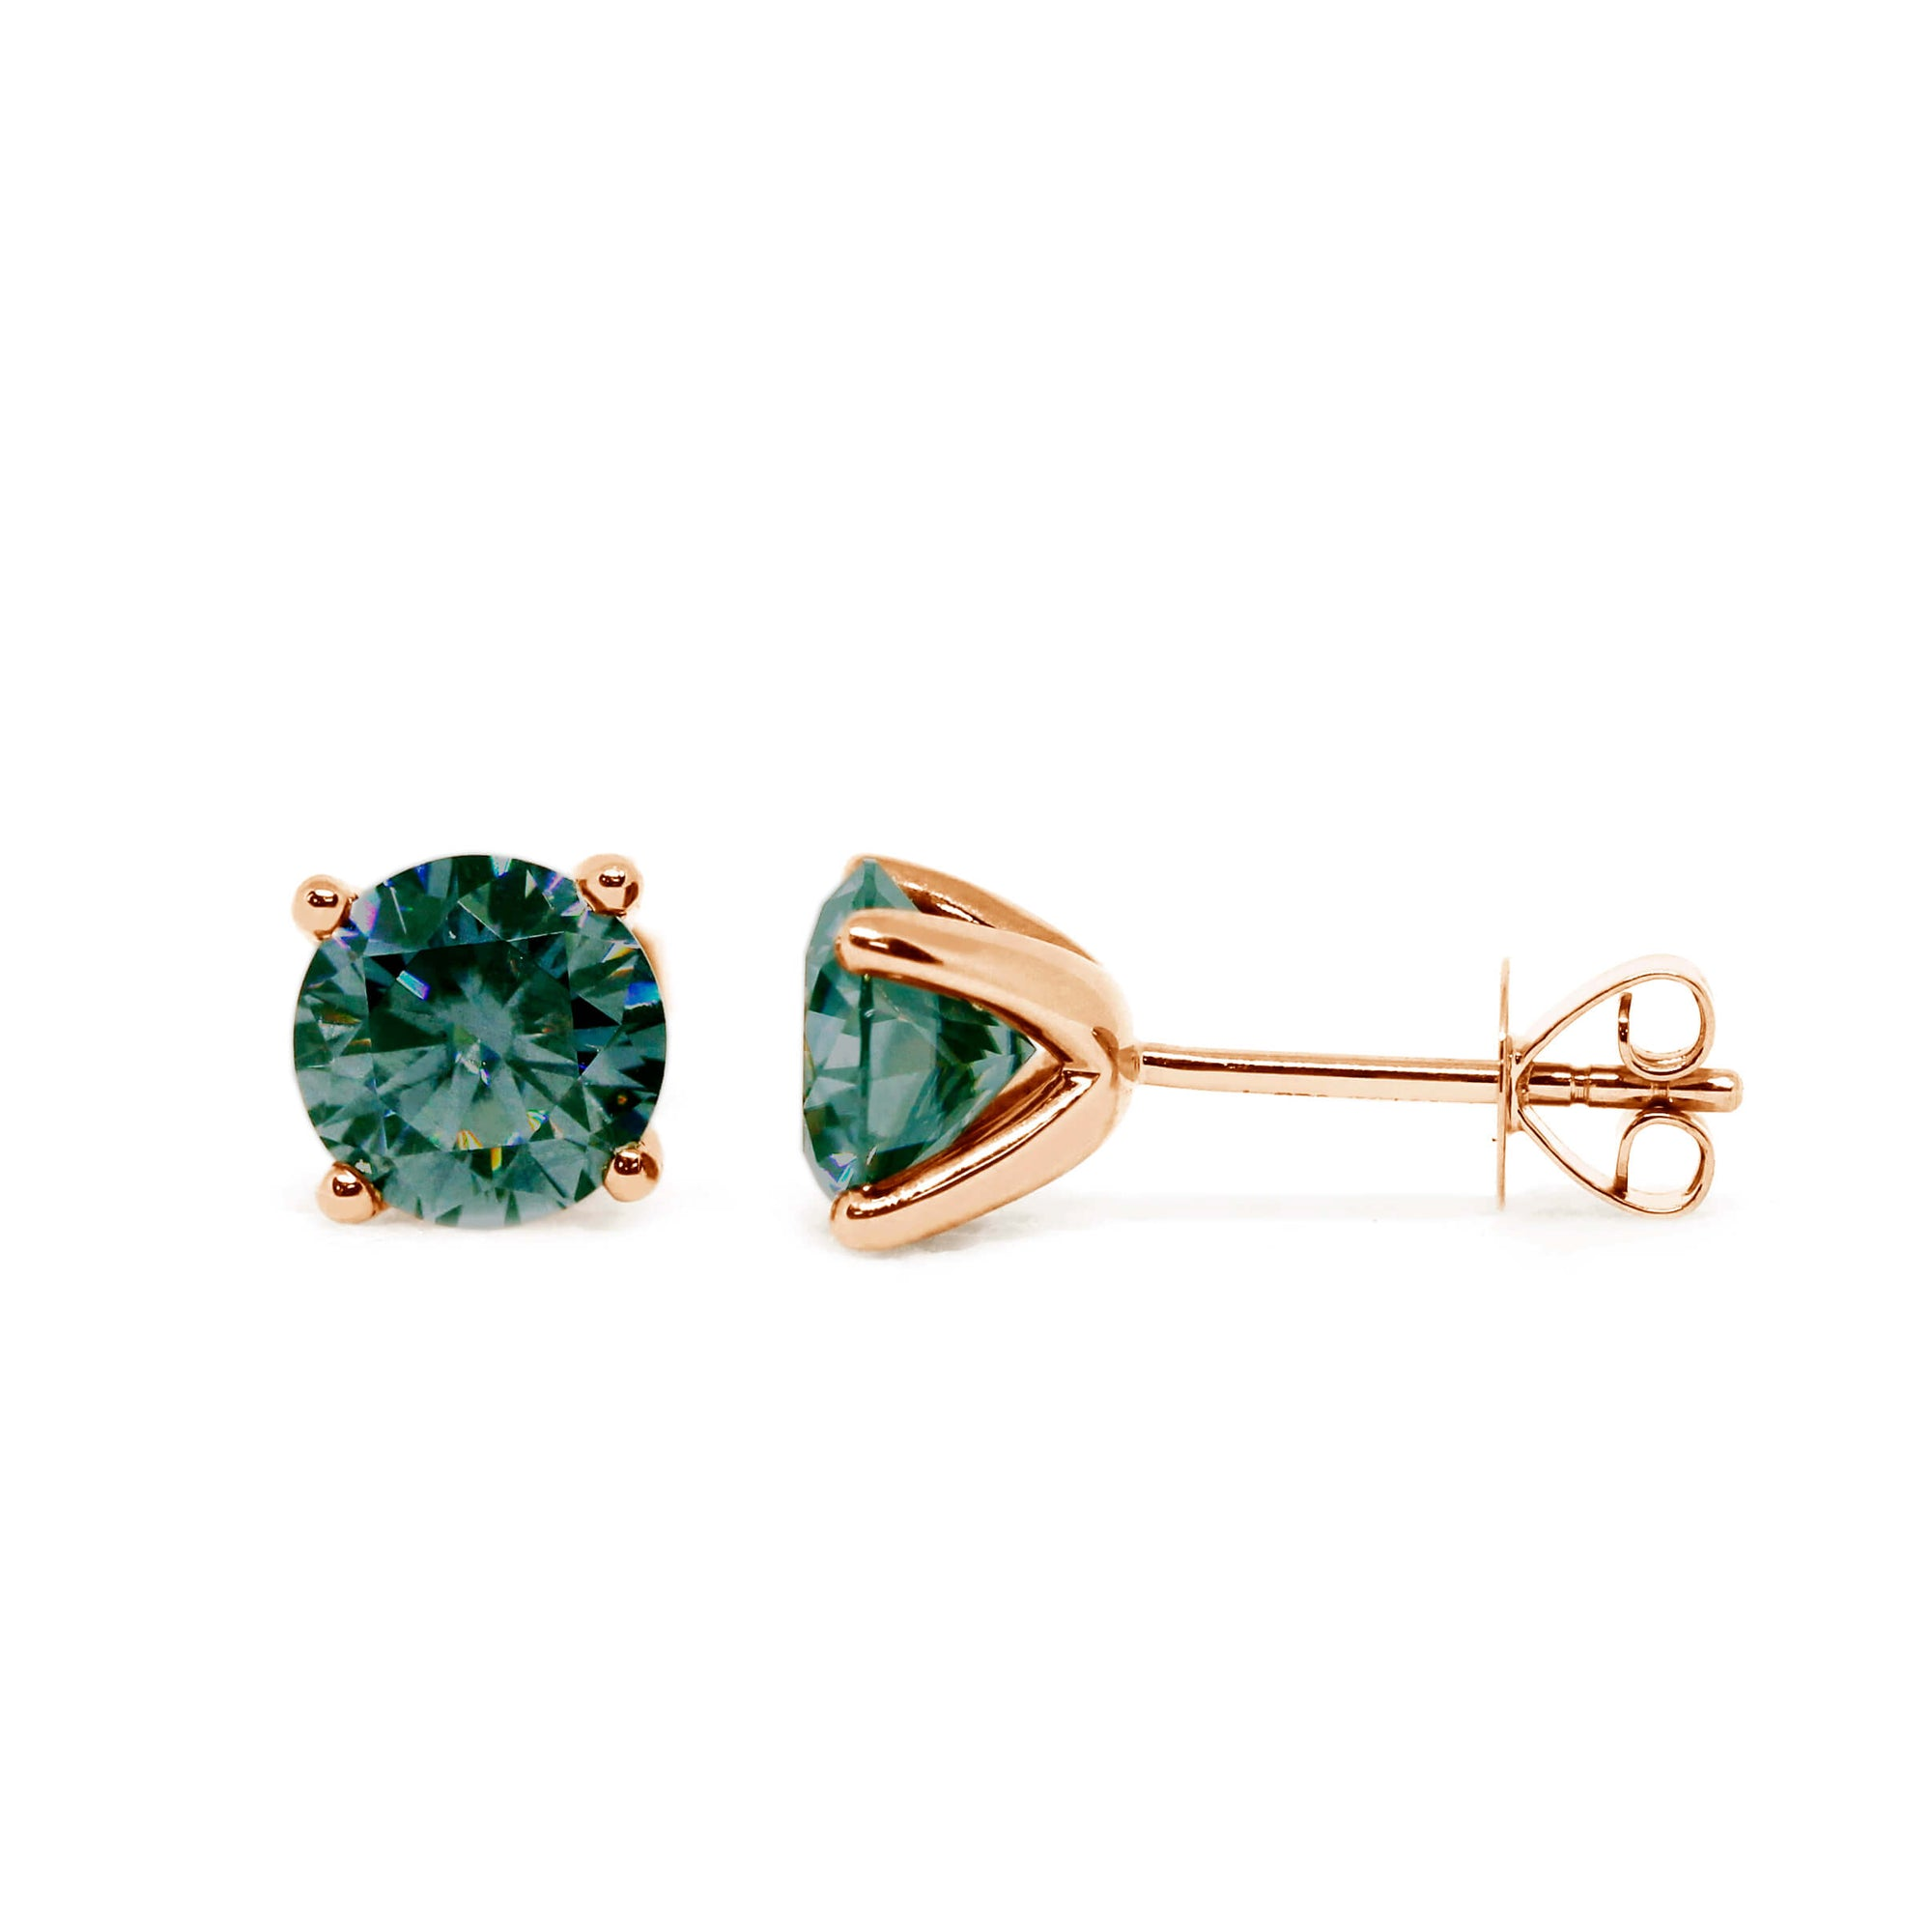 Dark Green Moissanite Solitaire 18K Rose Gold Stud Earrings - Lecaine Gems Moissanite